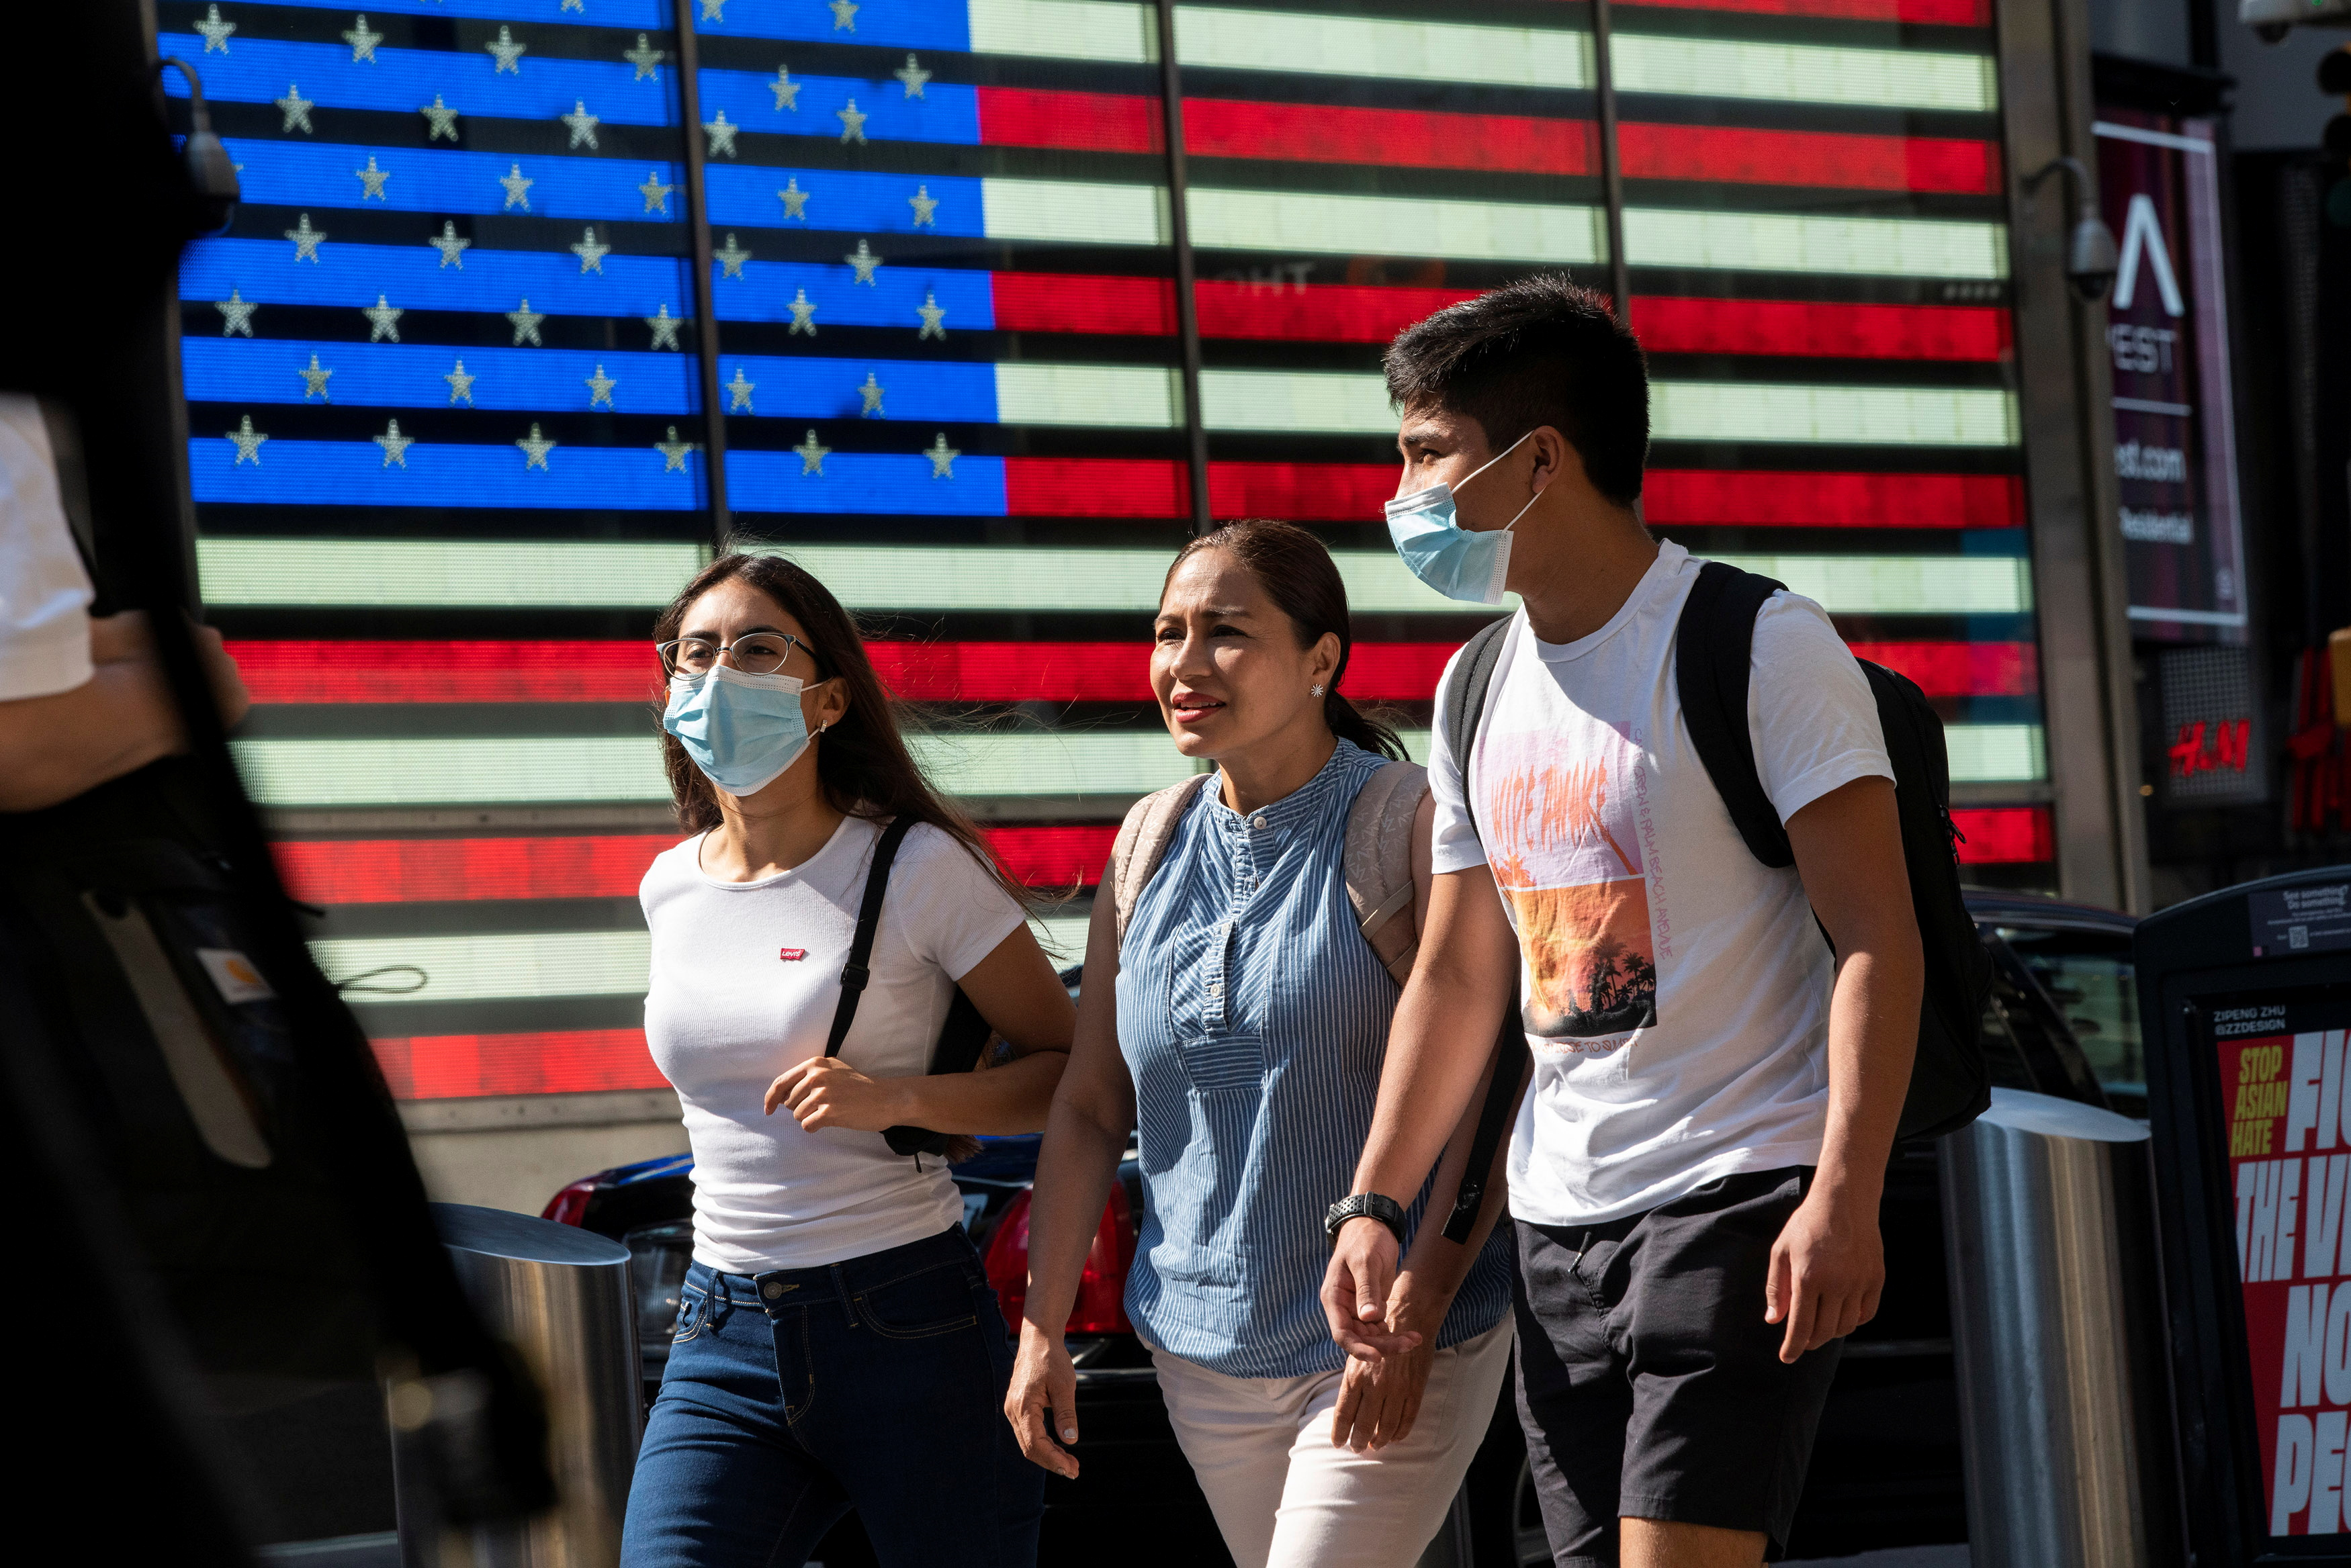 People wear masks around Times Square, as cases of the infectious coronavirus Delta variant continue to rise in New York City, July 23, 2021. REUTERS/Eduardo Munoz